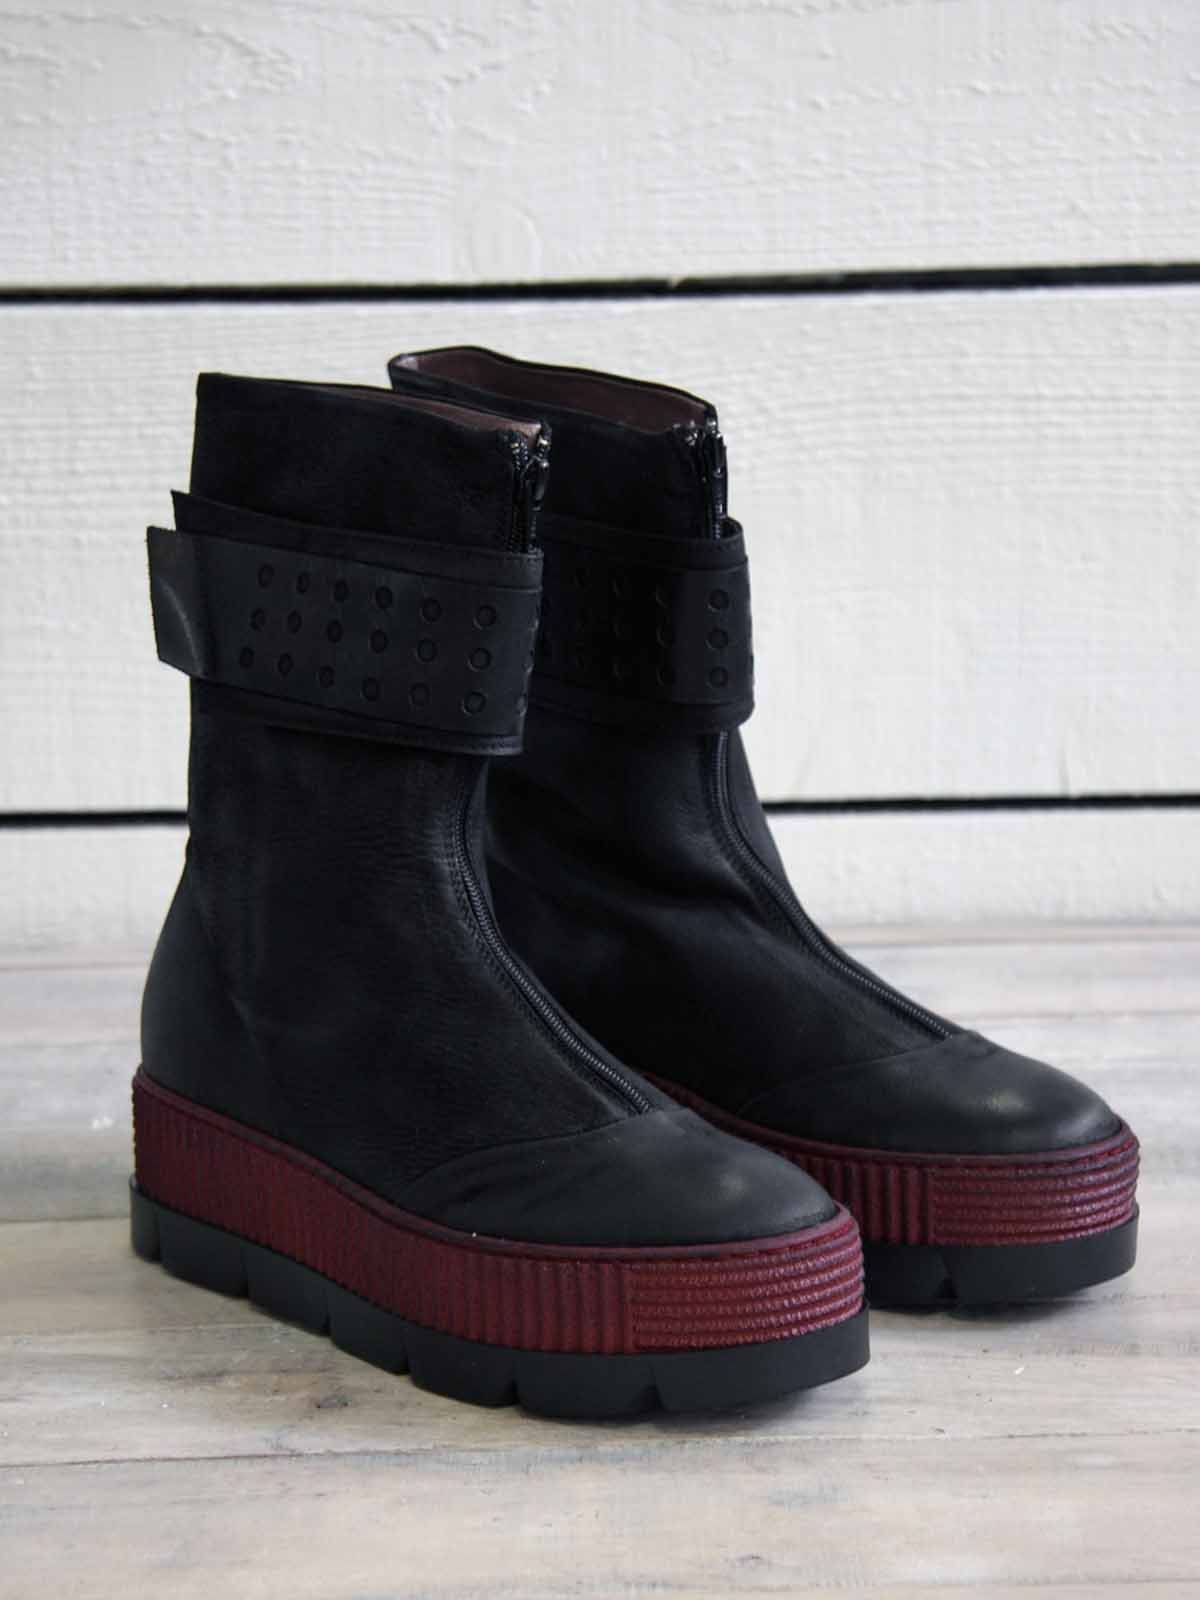 Lofina Chunky Boots with Red Band   Chunky boots, Boots, Red